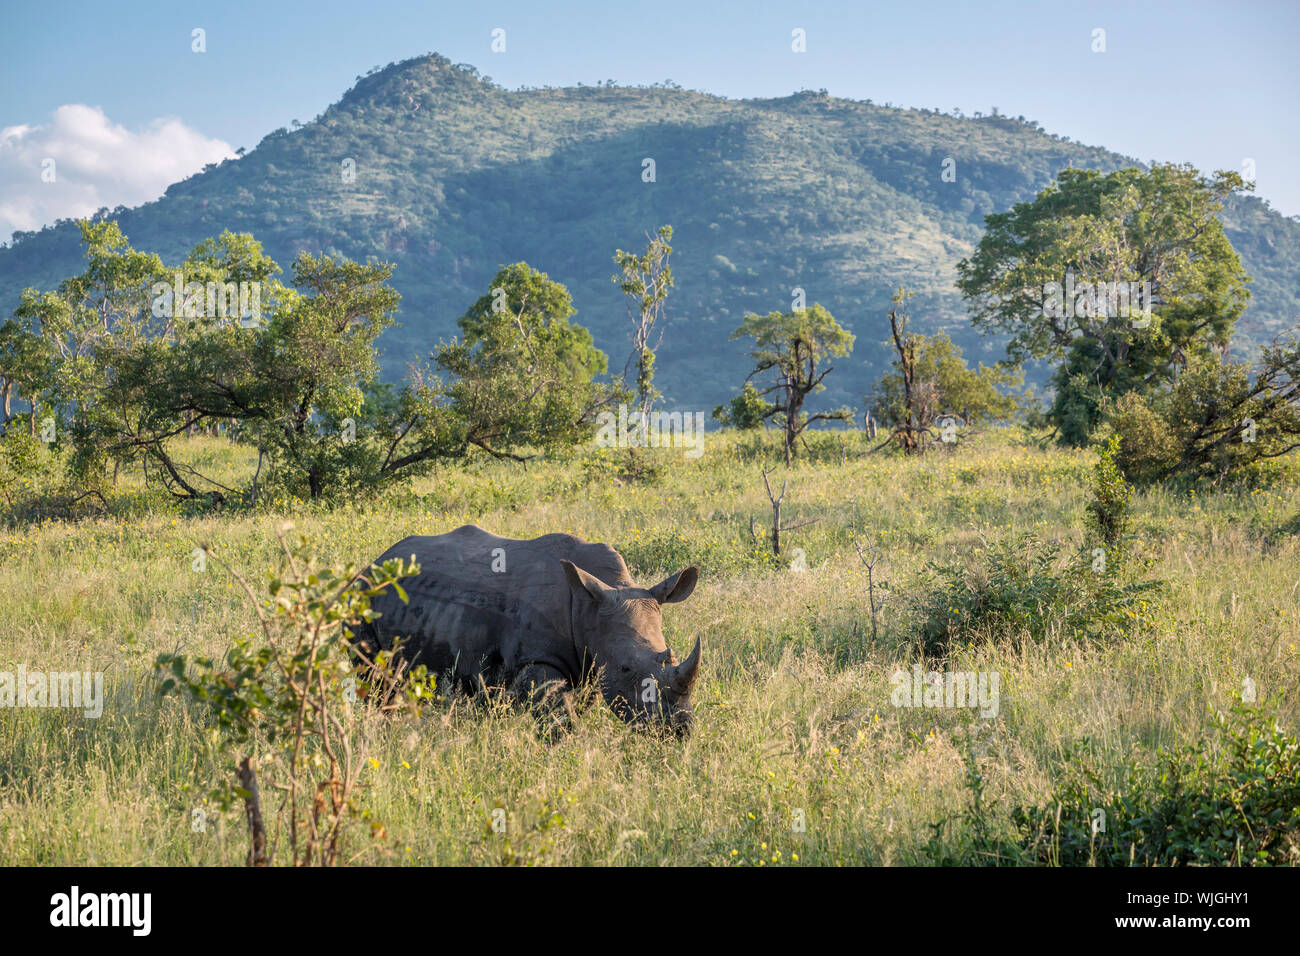 Southern white rhinoceros in green mountain scenery in Kruger National park, South Africa ; Specie Ceratotherium simum simum family of Rhinocerotidae Stock Photo